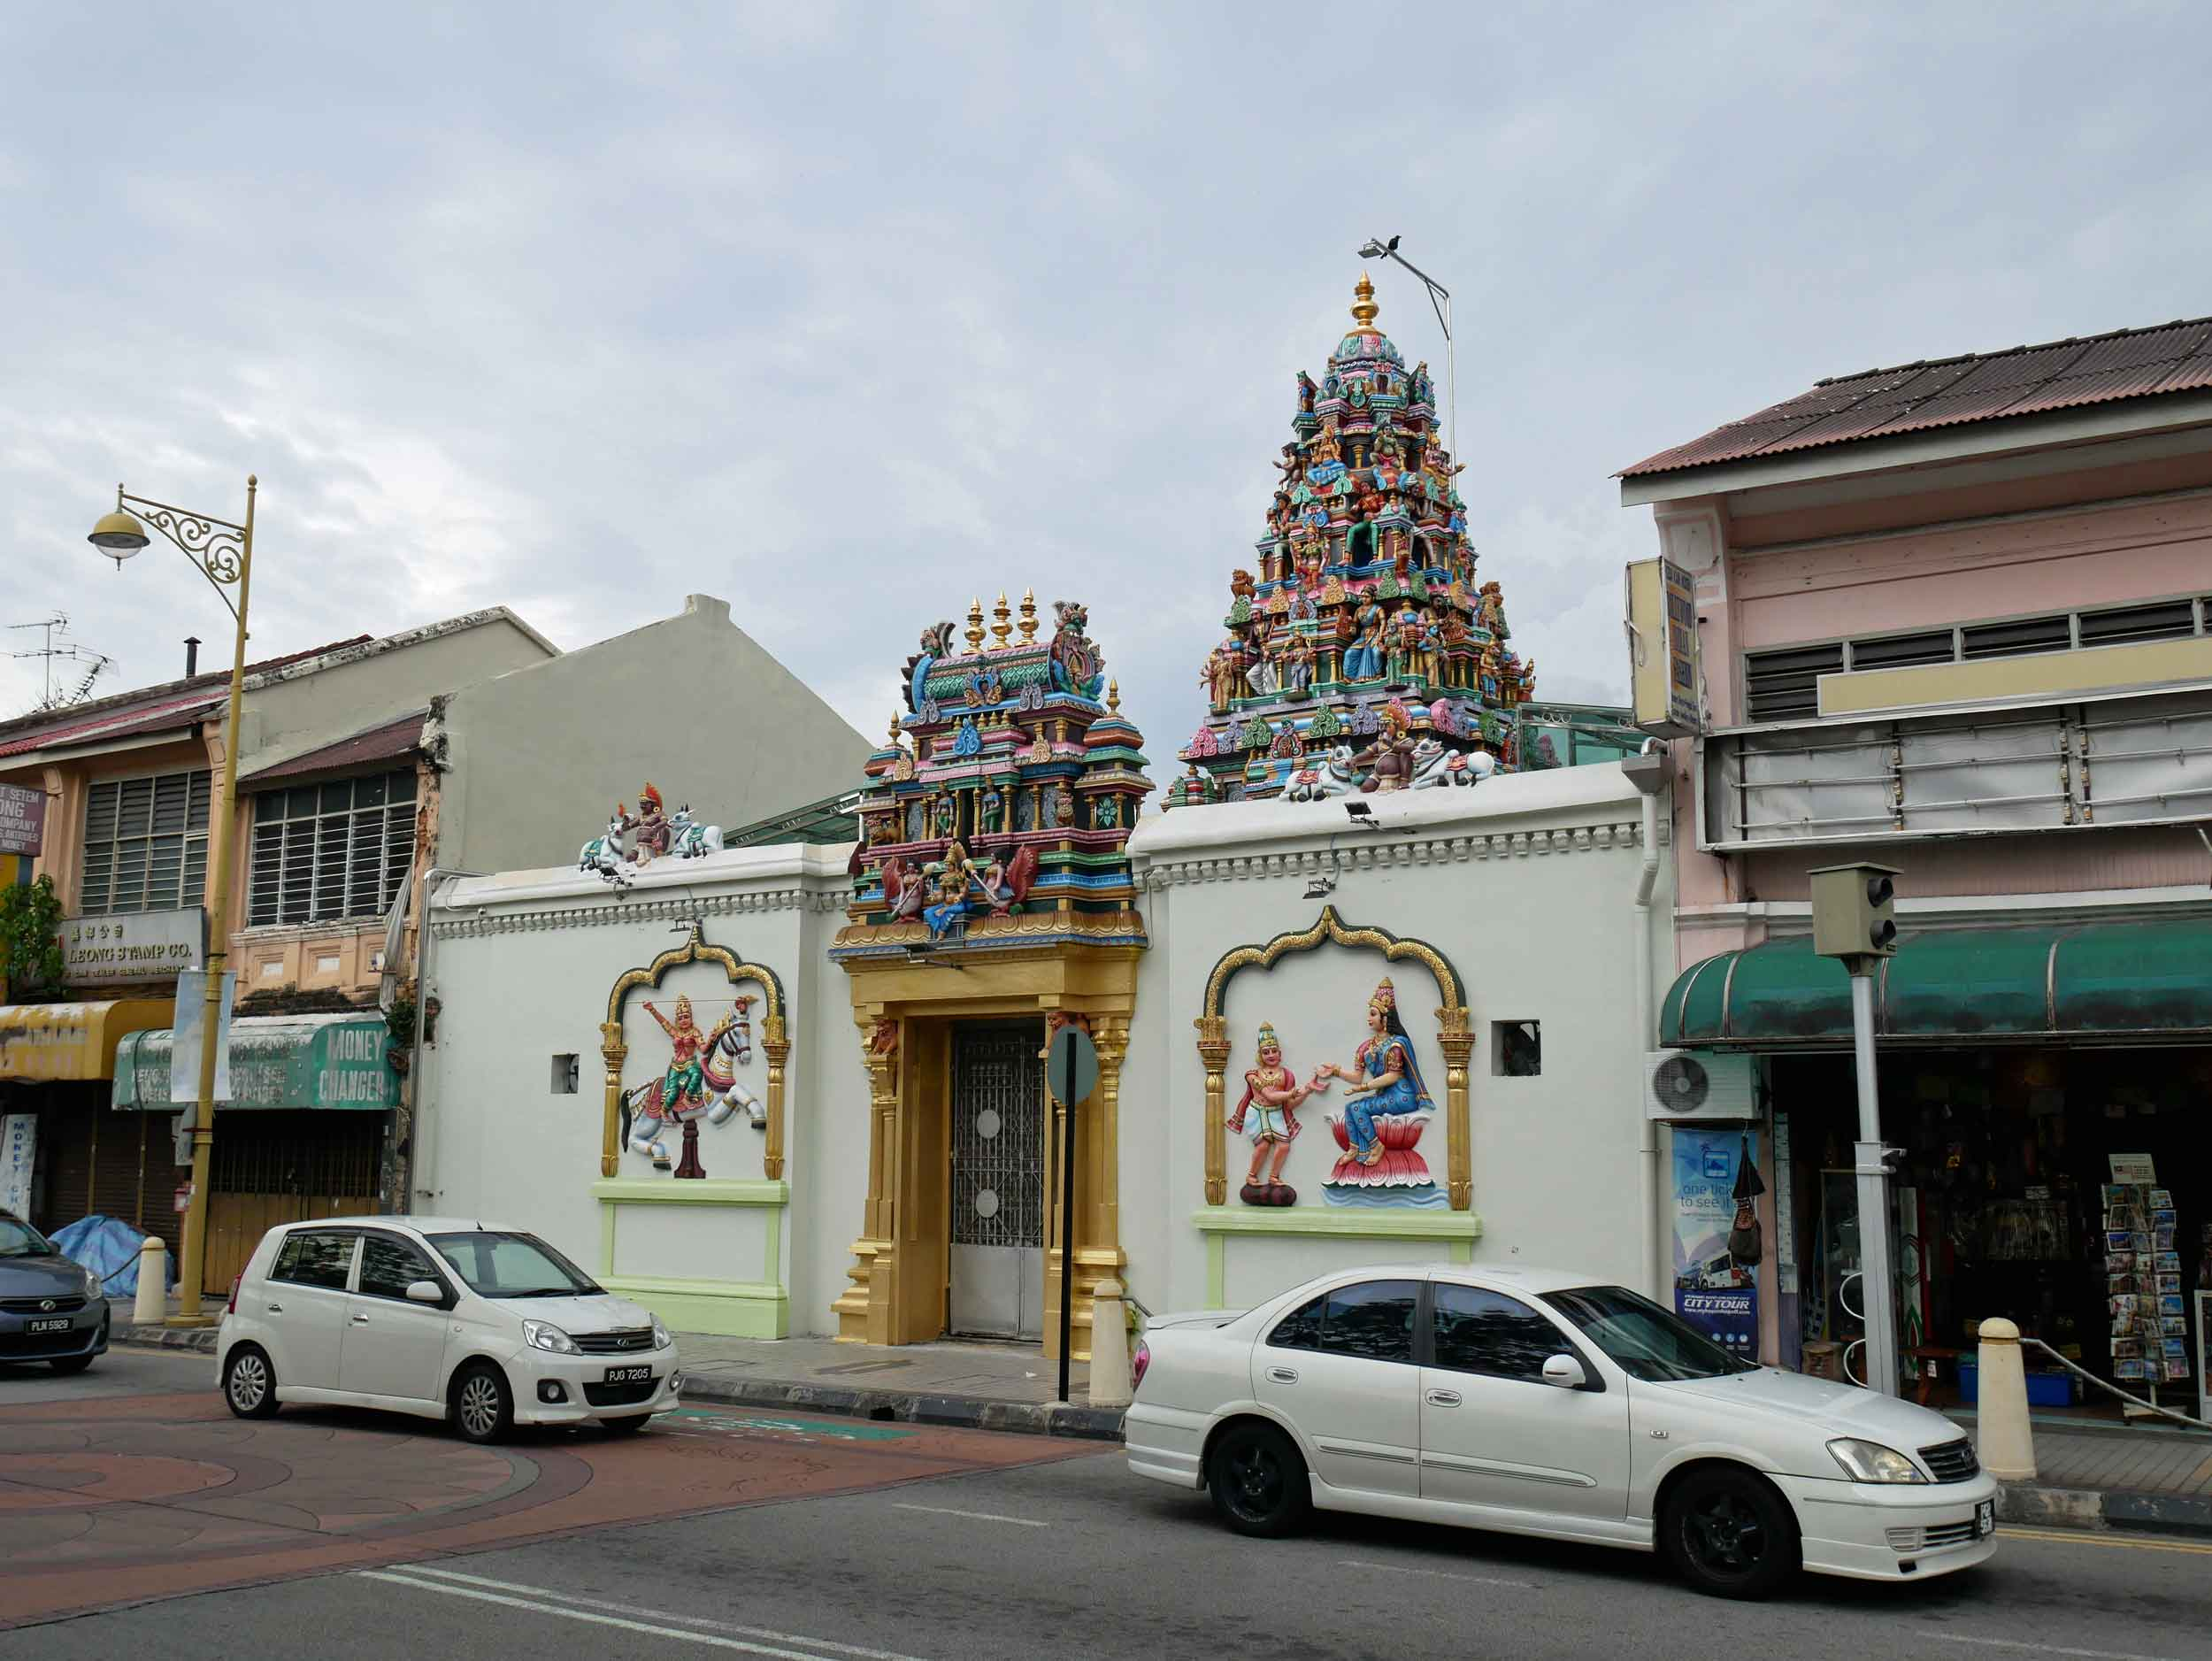 Sri Mahamariamman Temple, known locally as Queen Street Indian Temple, was also built in the 1800s and anchors the area's Little India.